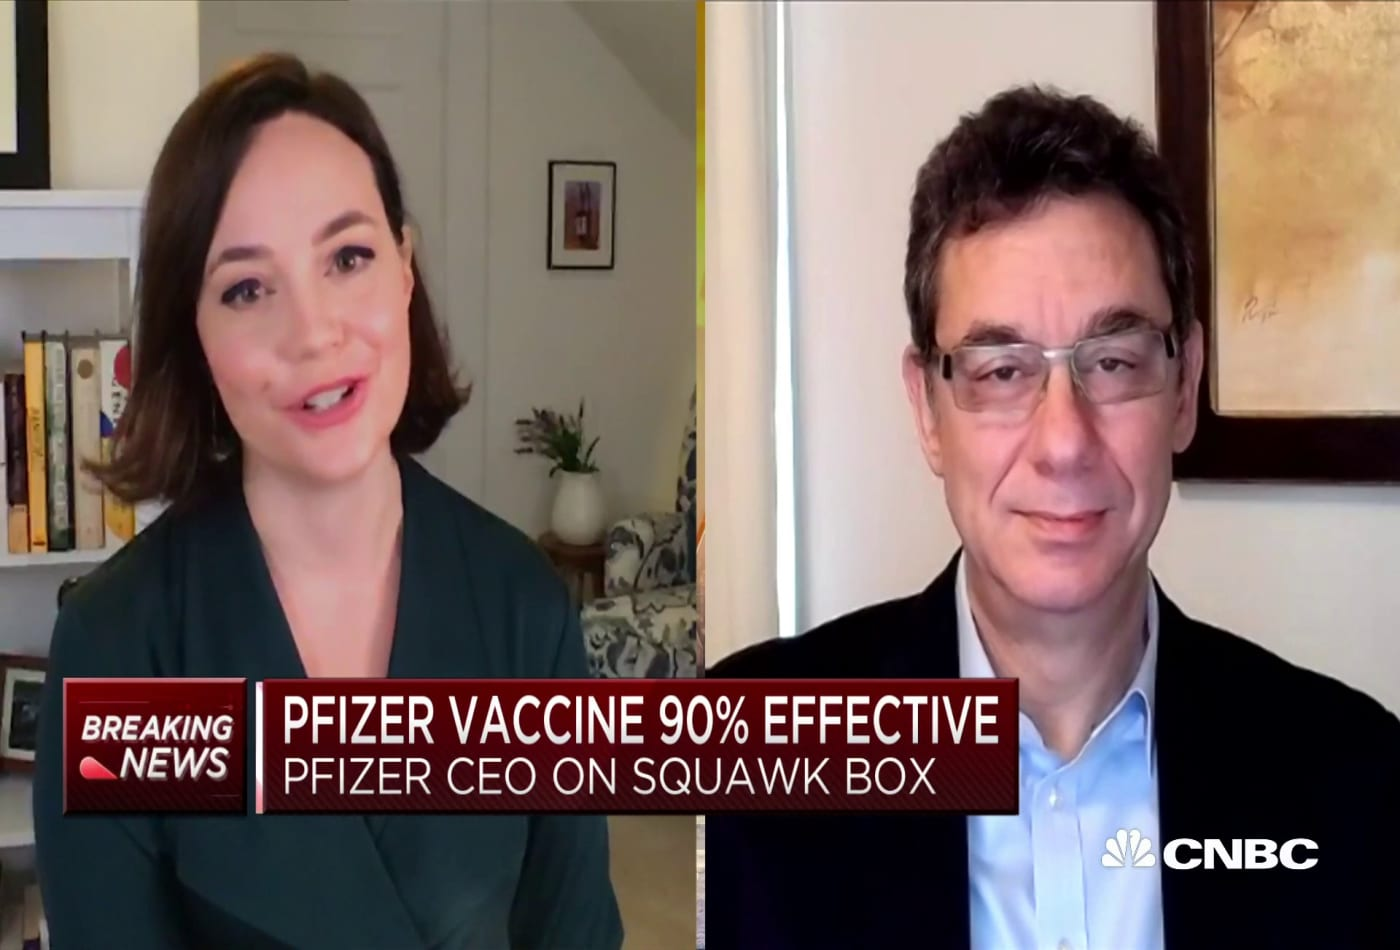 Pfizer CEO on Covid vaccine efficacy: 'It is a great day for humanity'